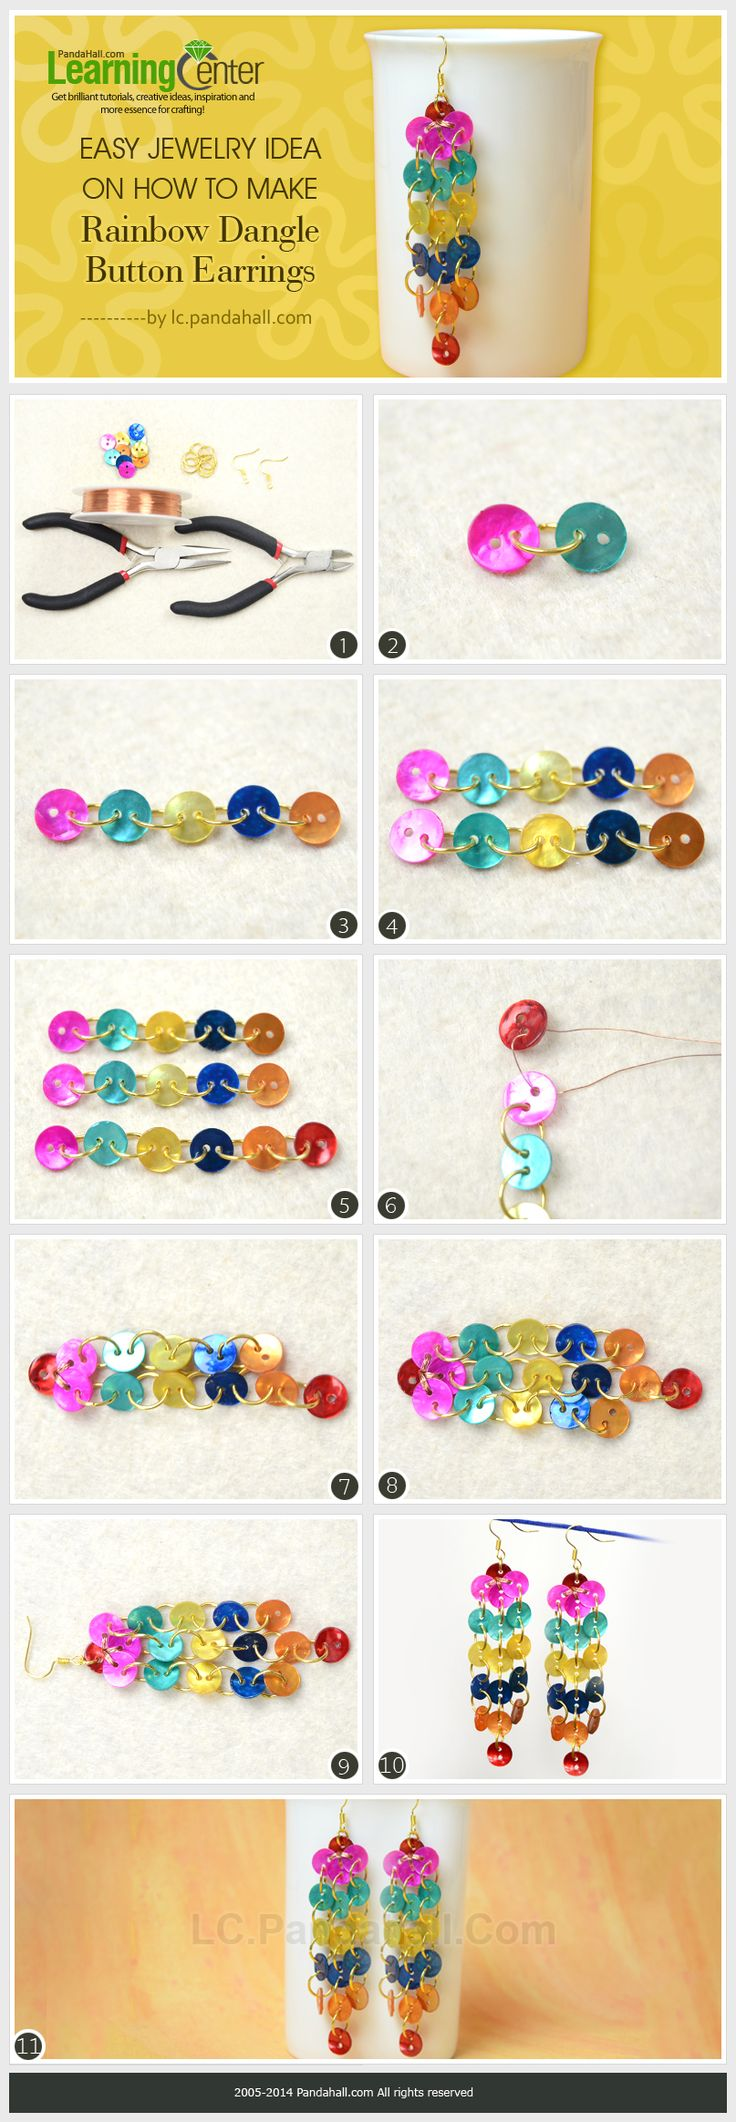 Easy Jewelry Idea on How to Make Rainbow Dangle Button Earrings